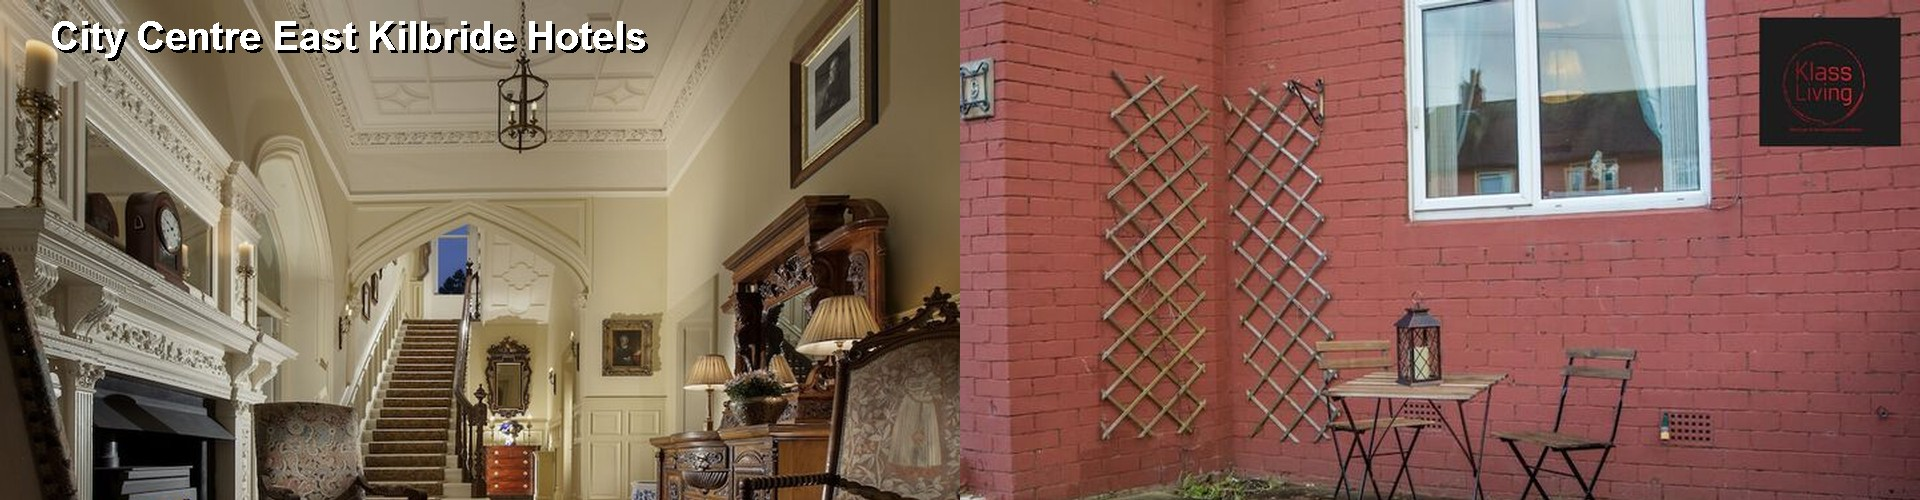 5 Best Hotels near City Centre East Kilbride